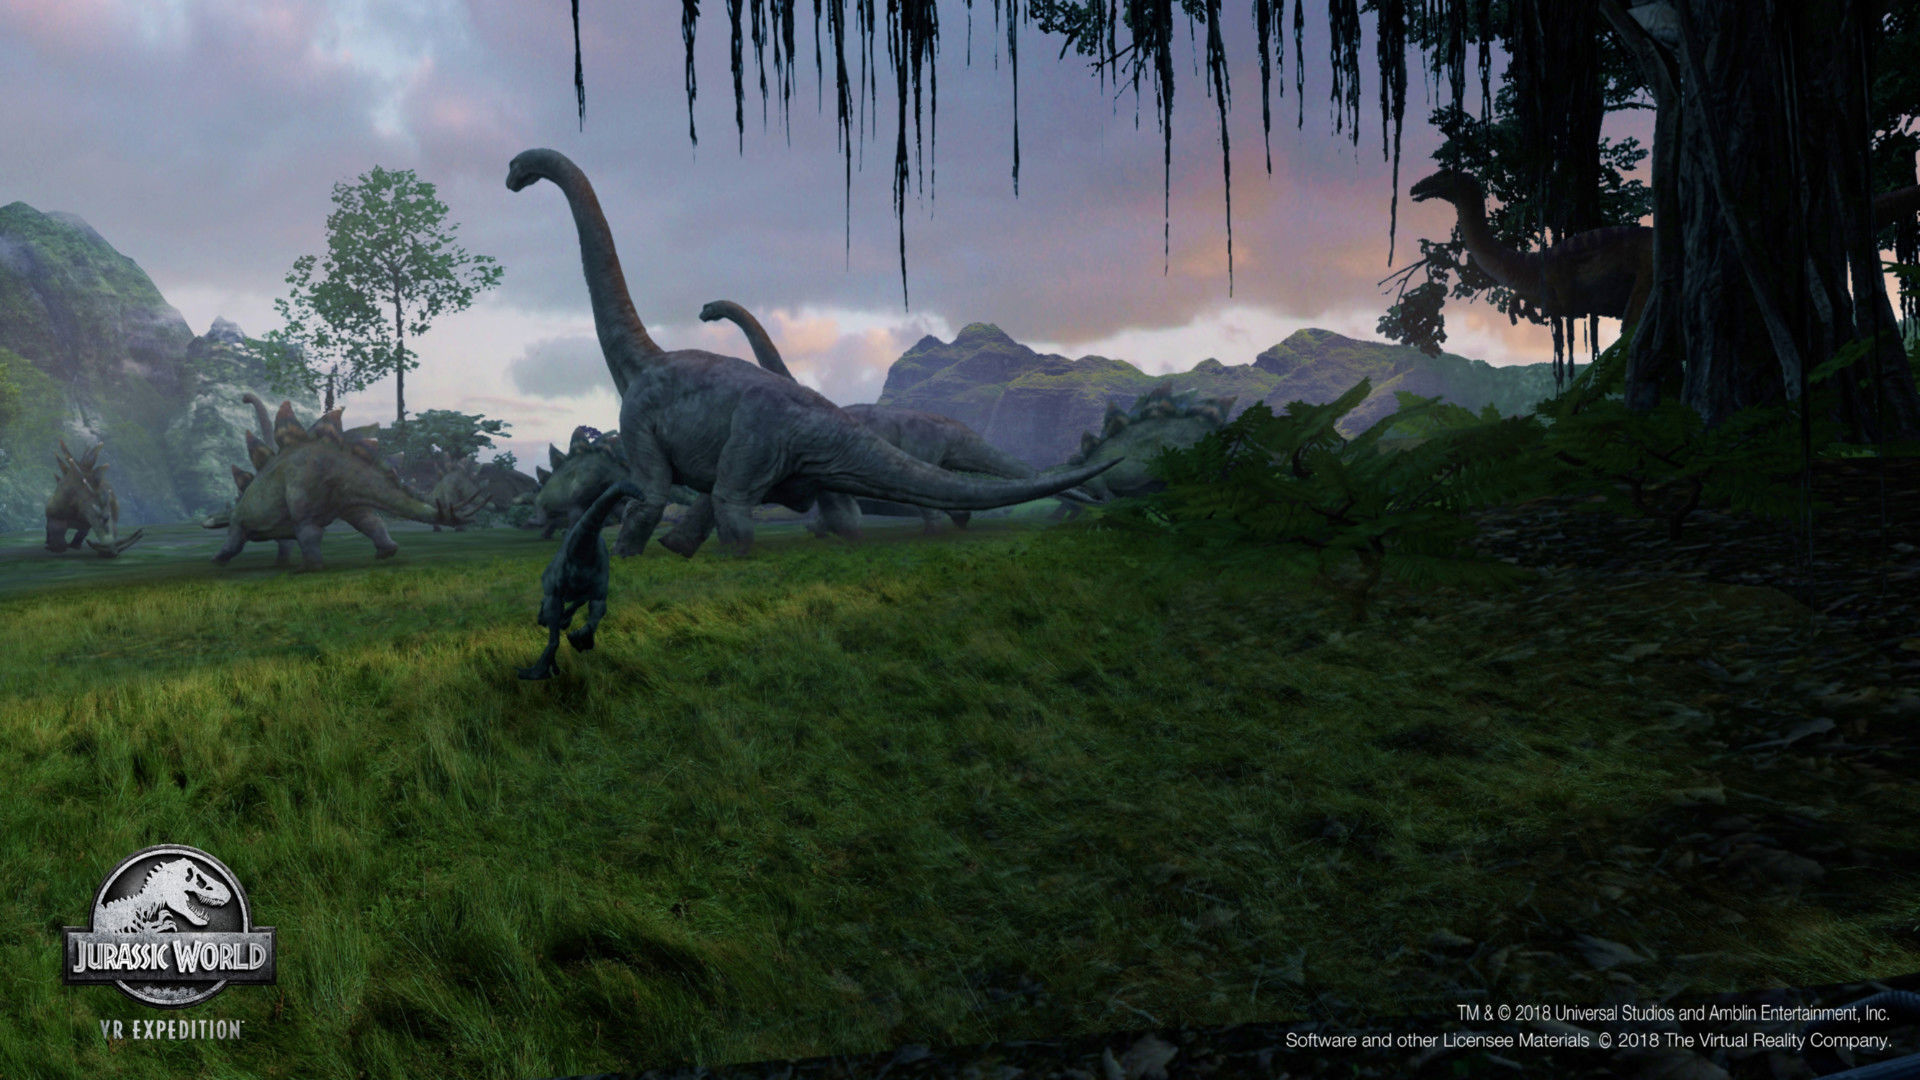 New 'Jurassic World' VR Game to Debut at Dave & Buster's